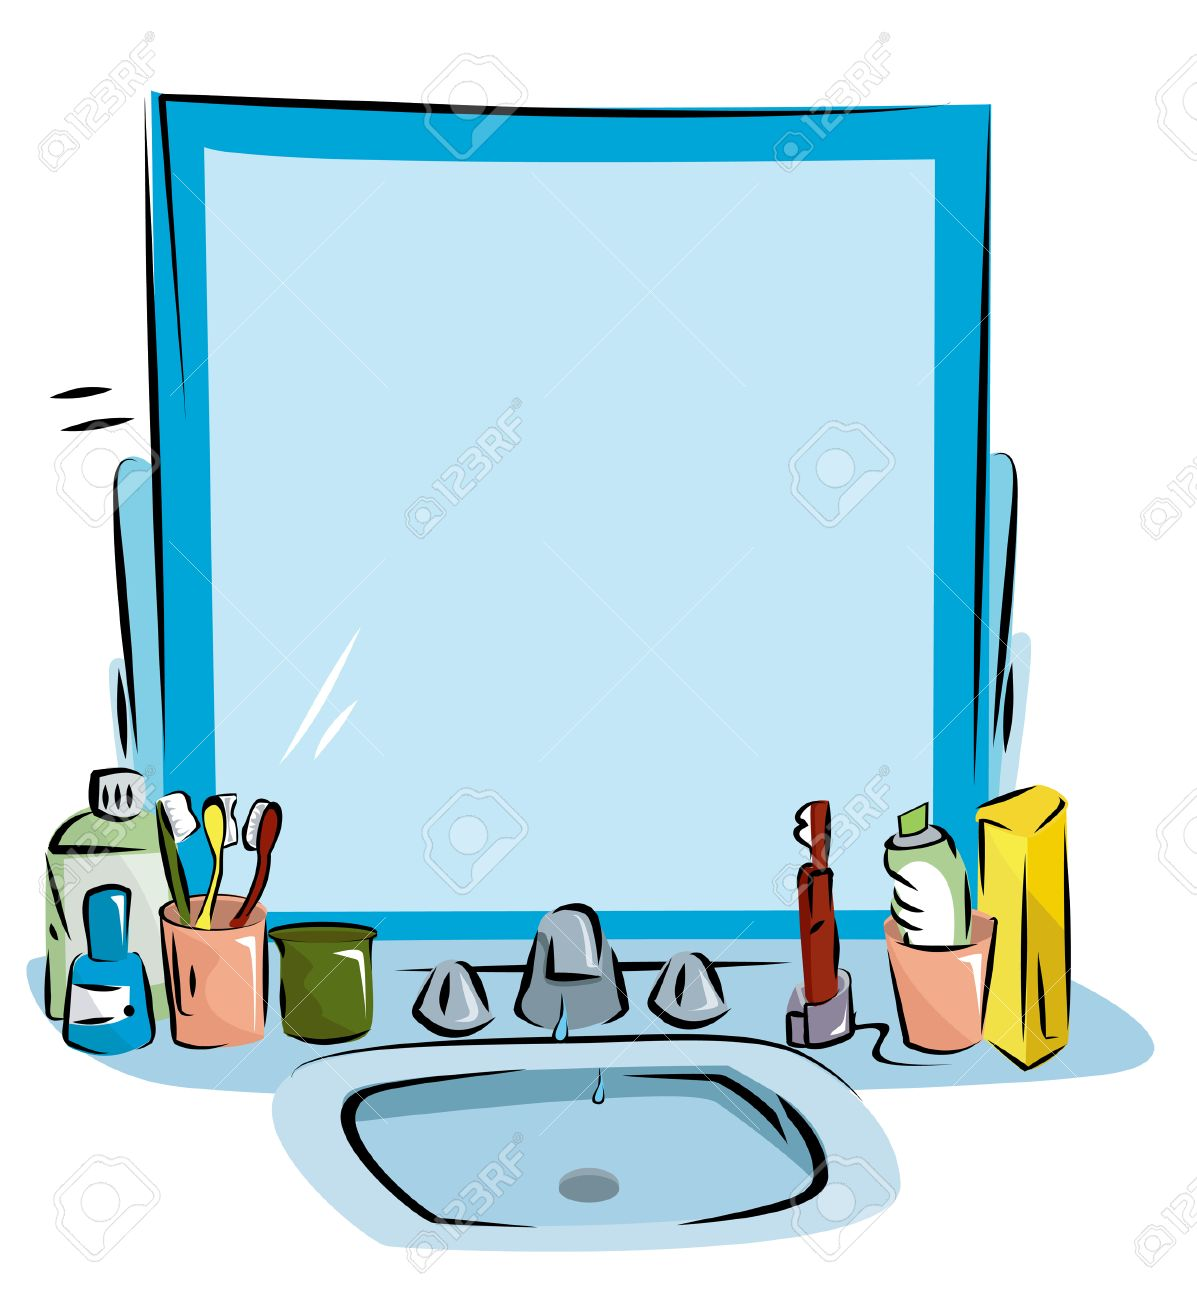 Bathroom Sink Background Royalty Free Cliparts, Vectors, And Stock ... for Bathroom Sink Clipart  587fsj